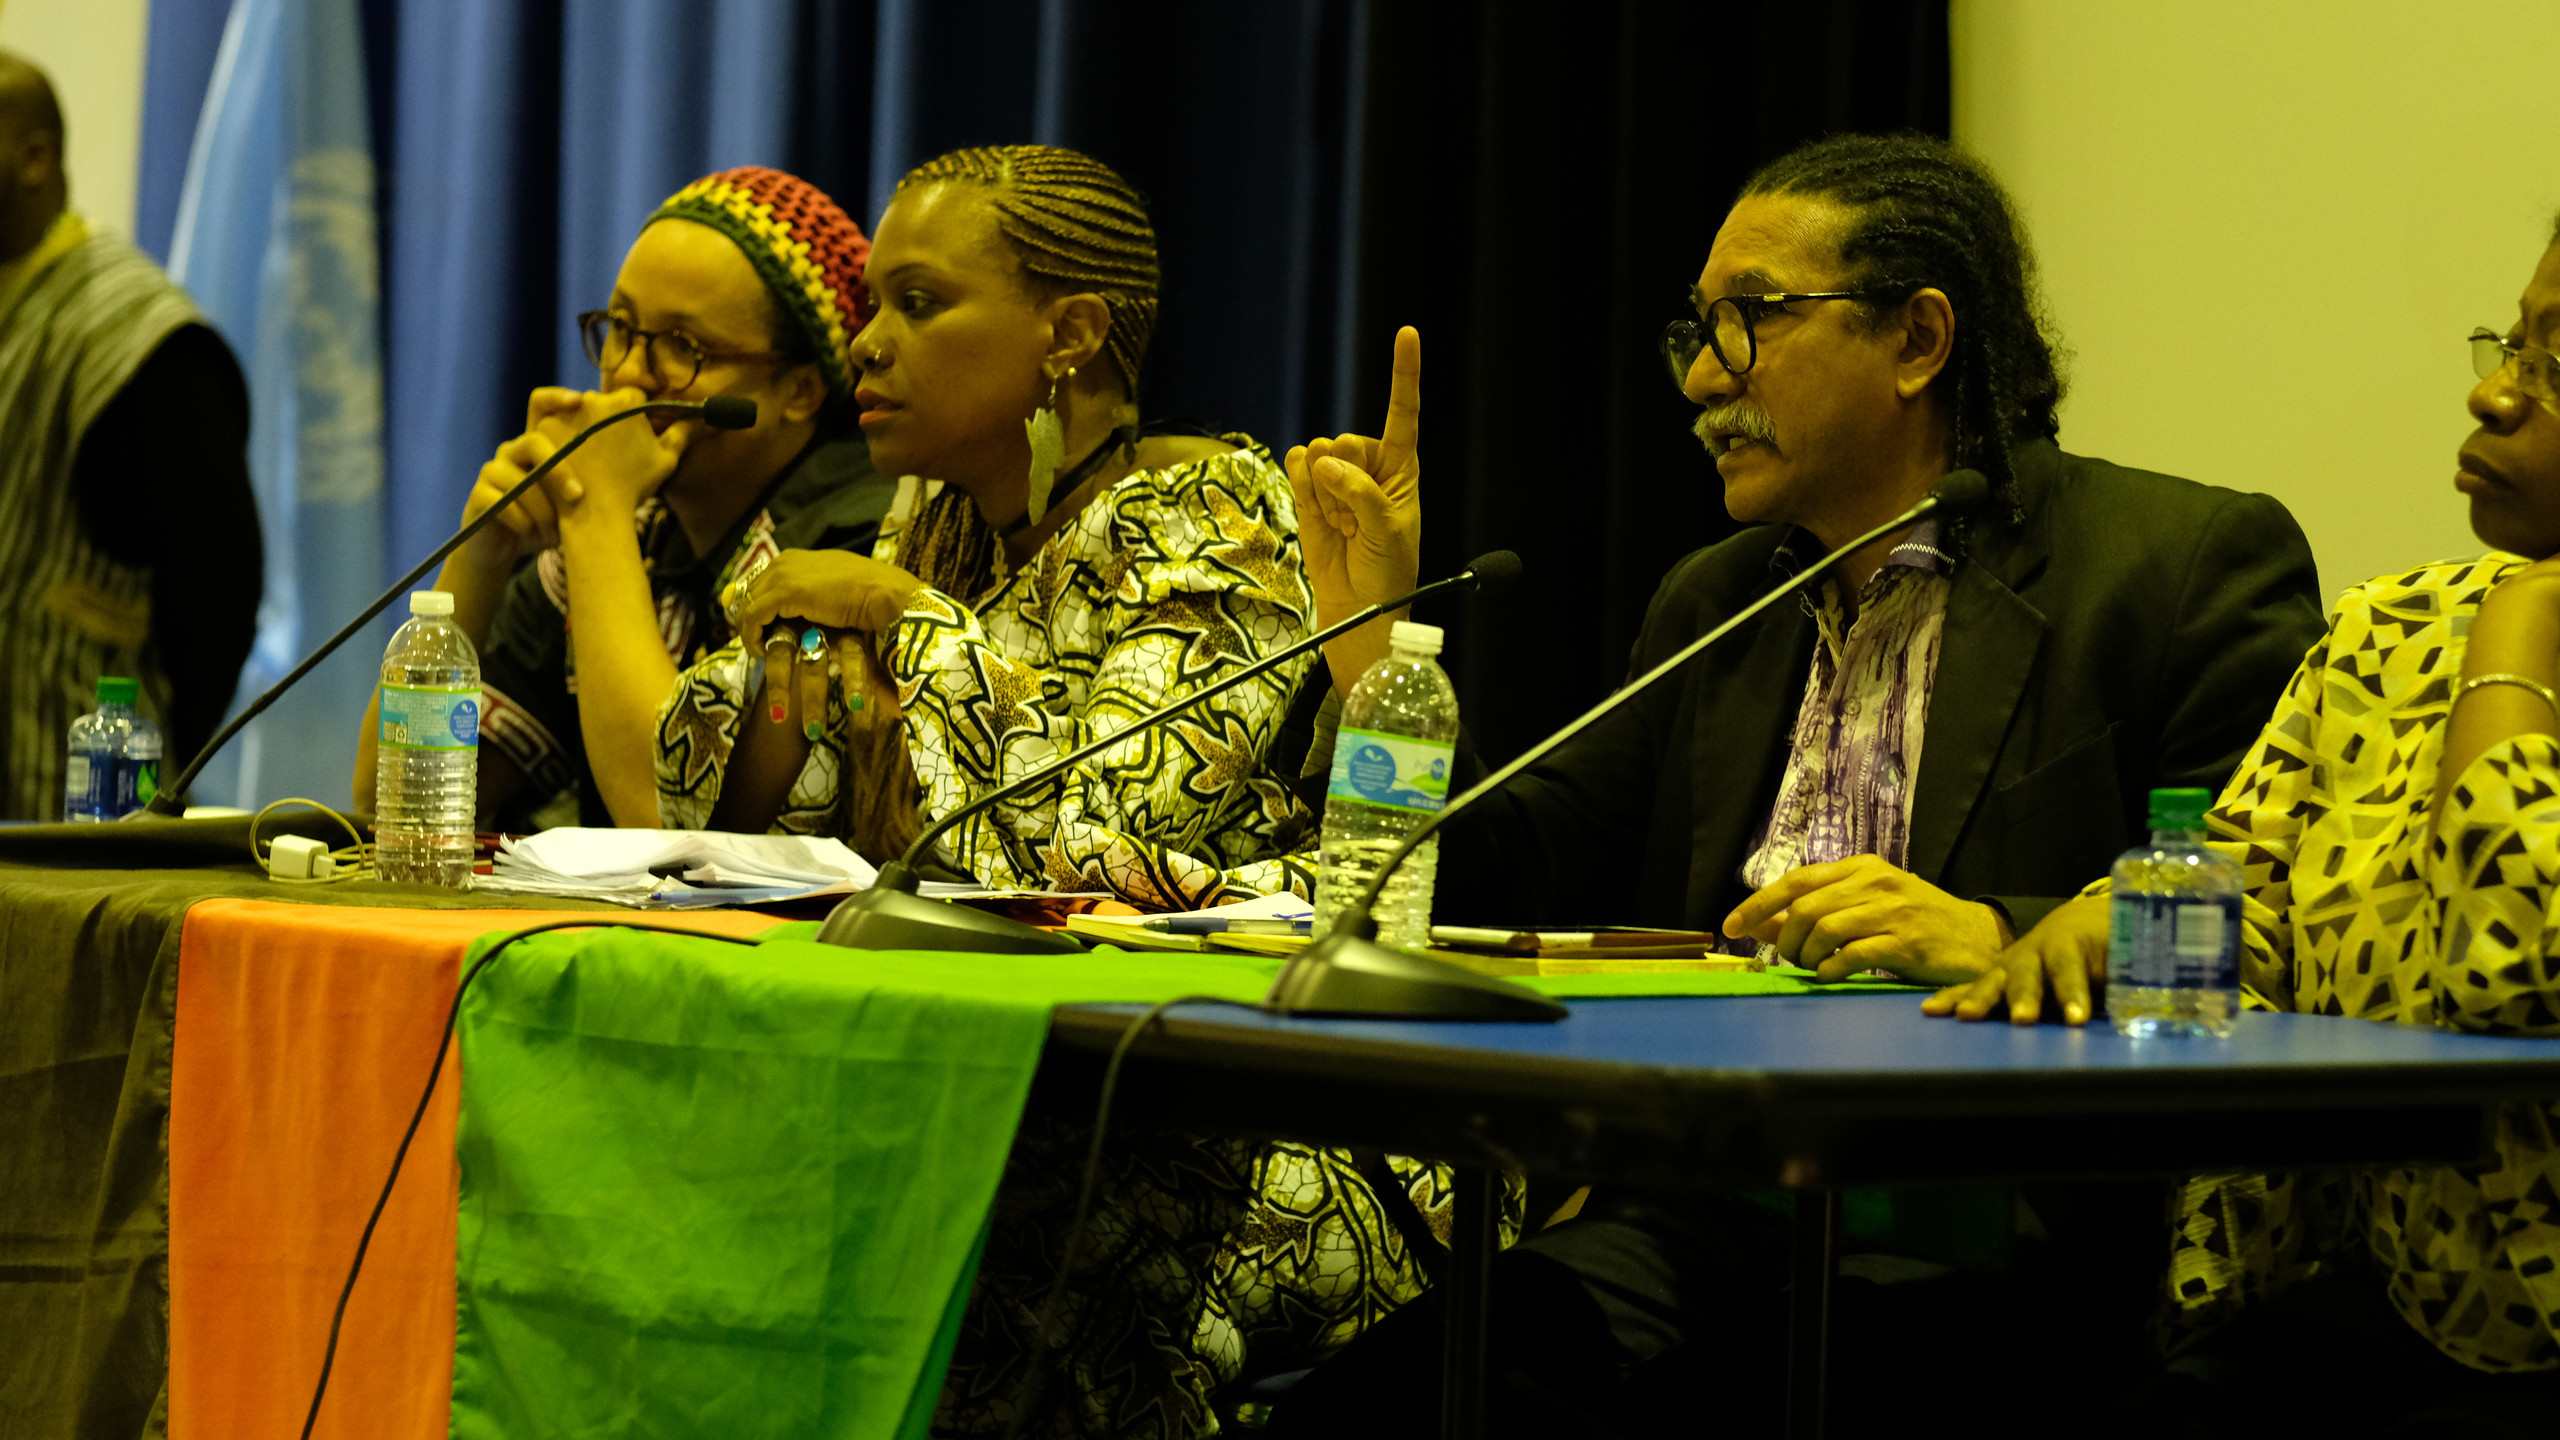 ARAAC EEUU founding members challenged themselves and the audience to build an collective African agenda.